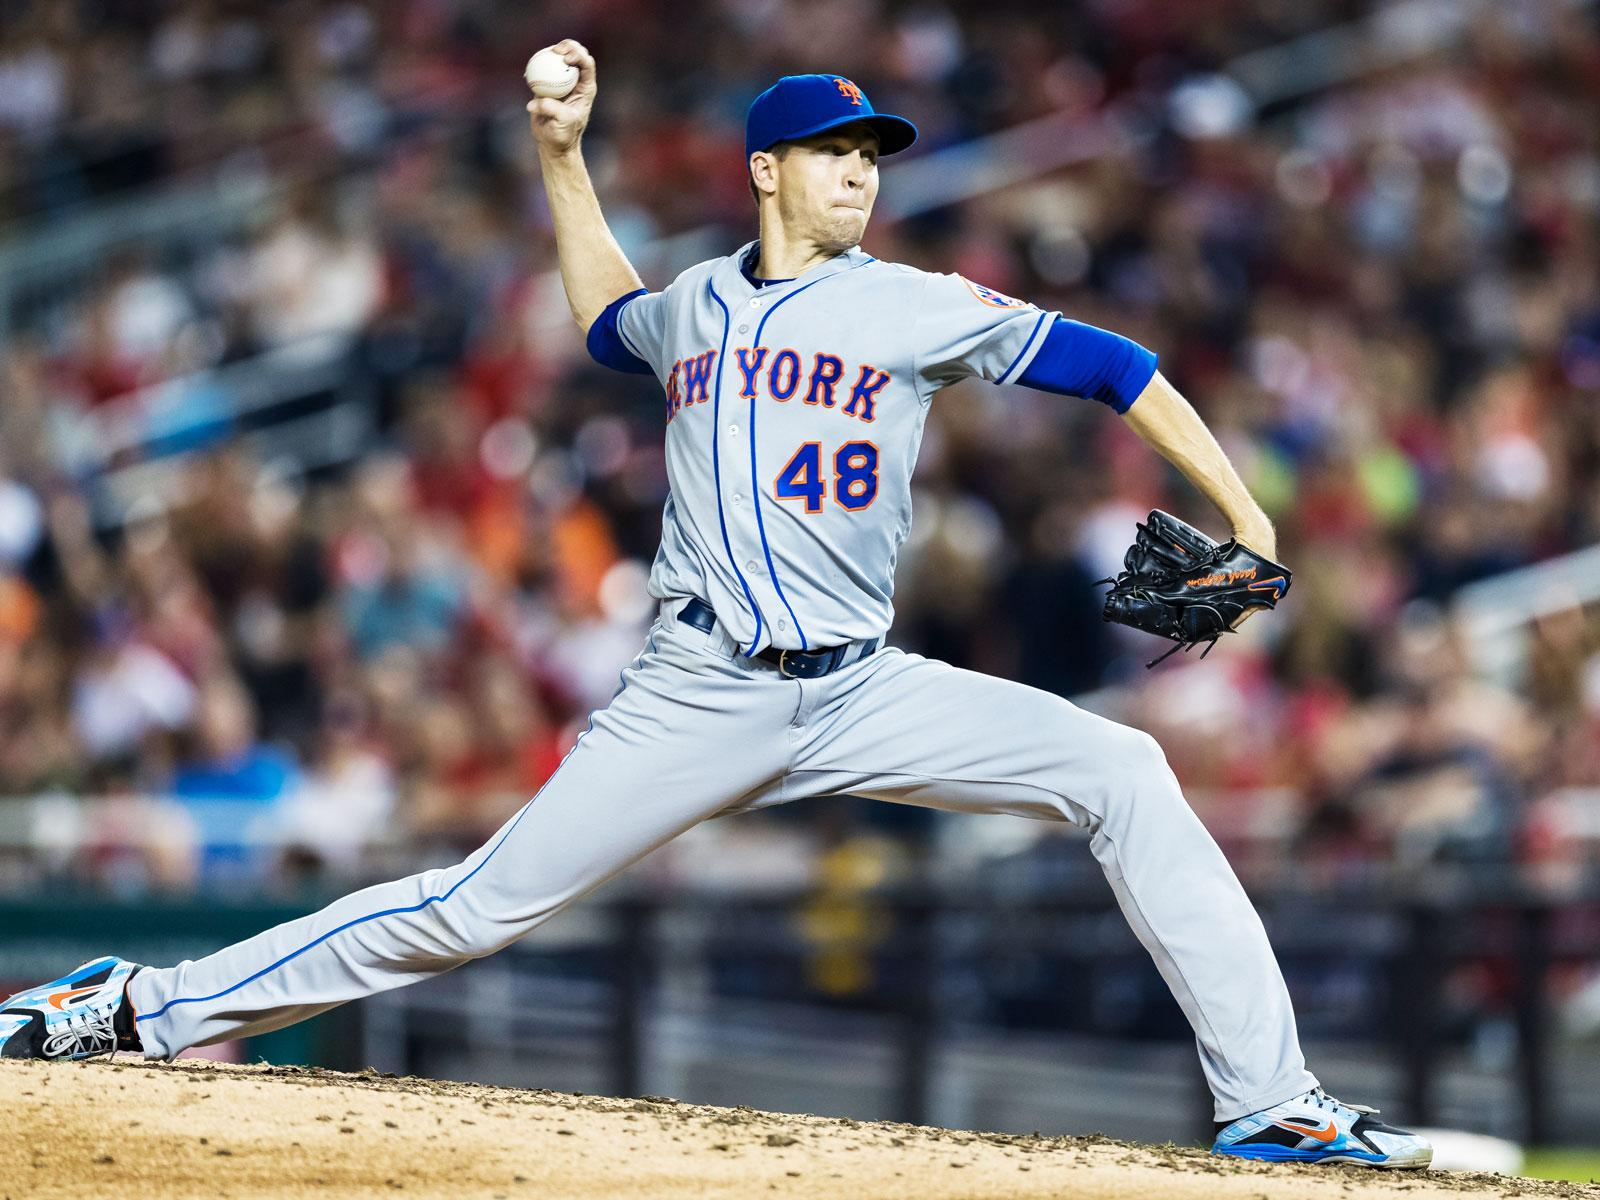 Cy Young predictions: Jacob deGrom? Justin Verlander? Blake Snell